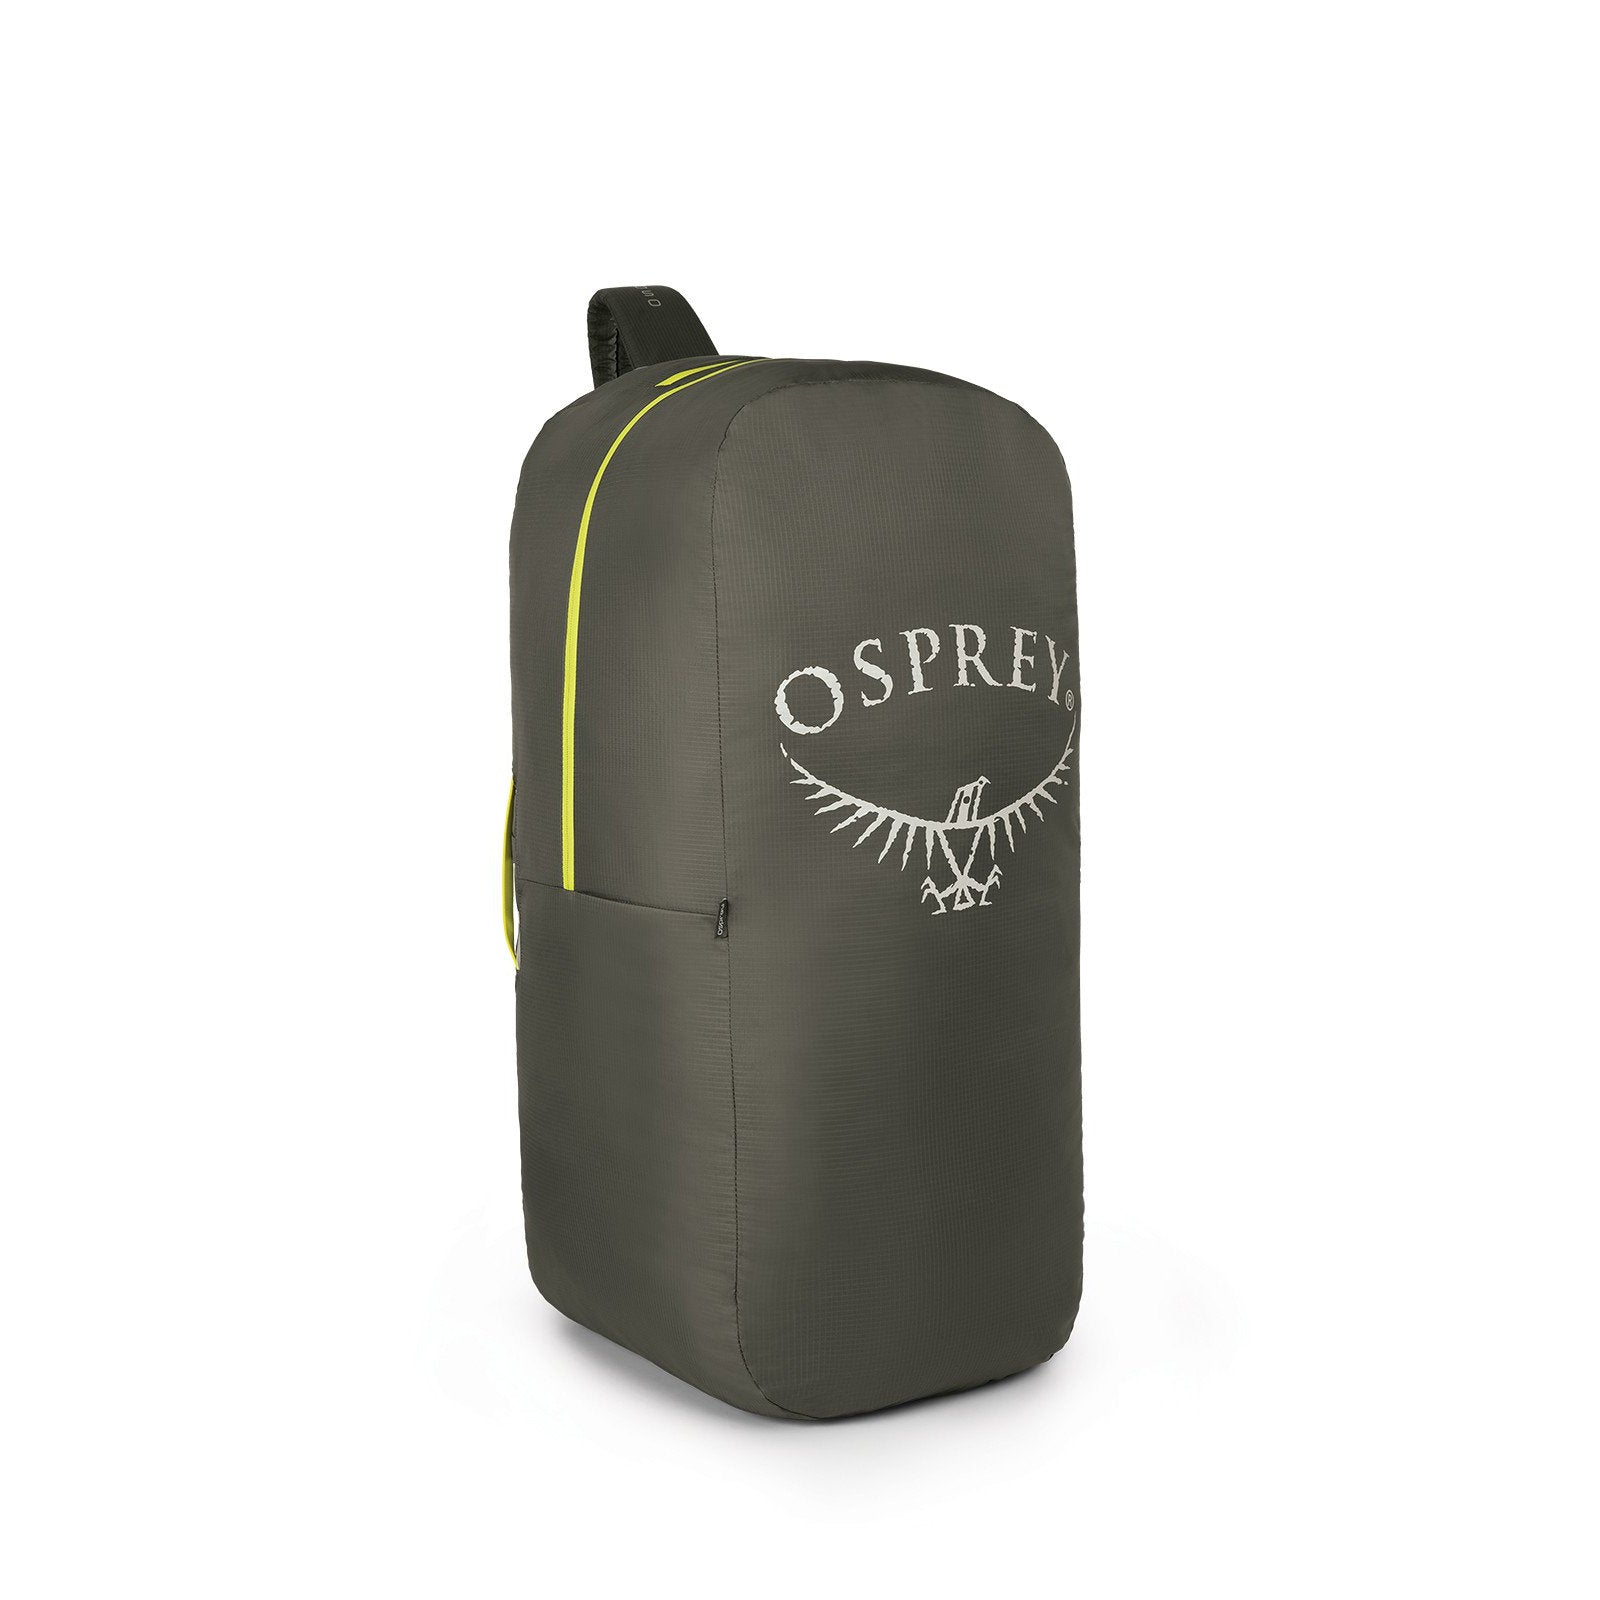 Osprey Airporter Travel Pack Protector - Medium (45-75L)